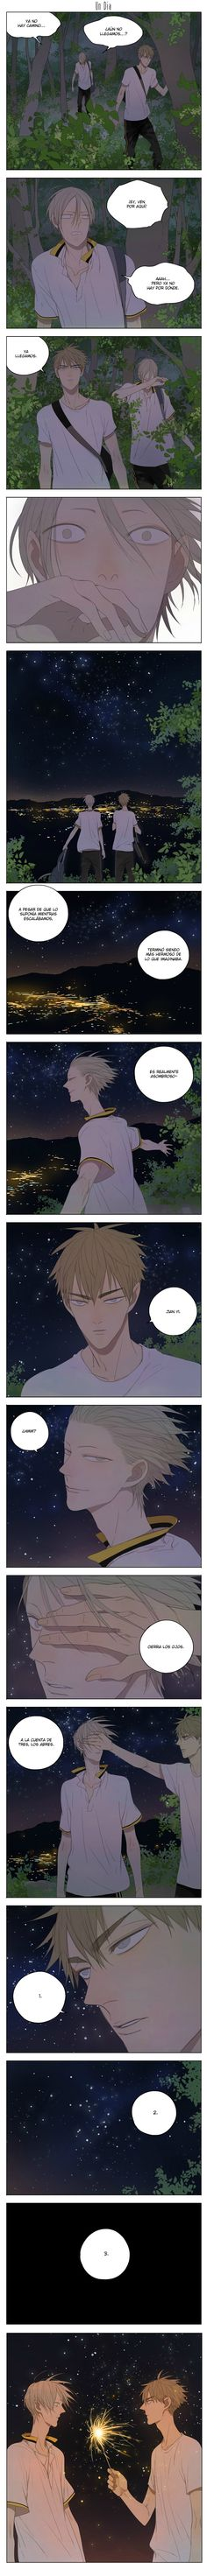 19 Days-Old Xian-Capitulo 6